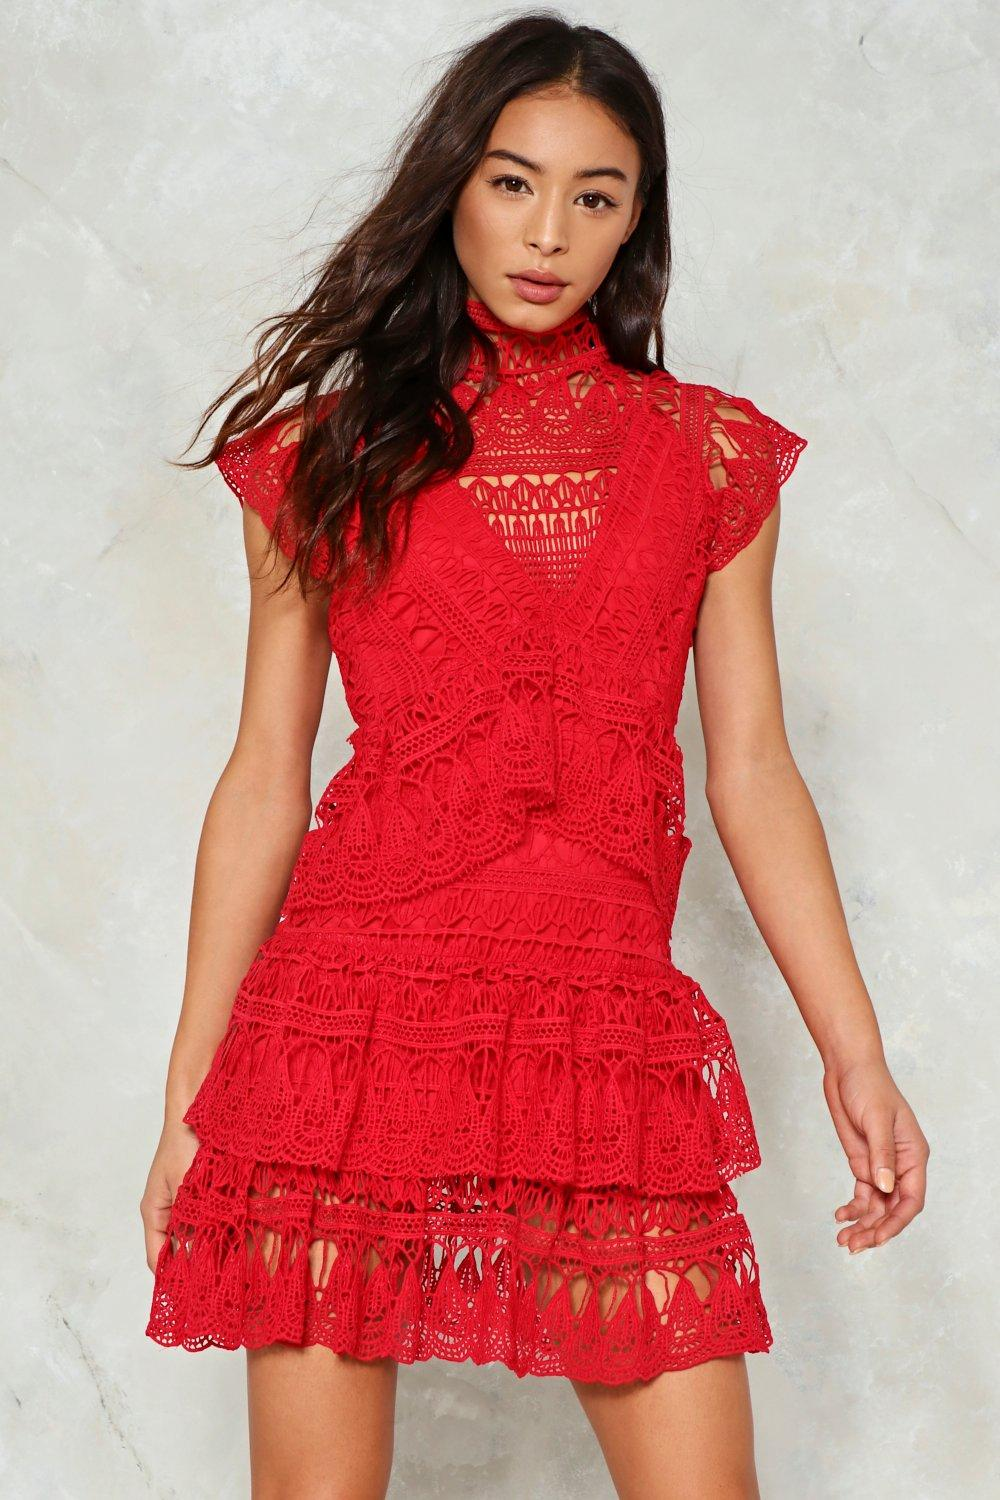 Crochet Lace dress lolita crochet lace dress RZJYPDU